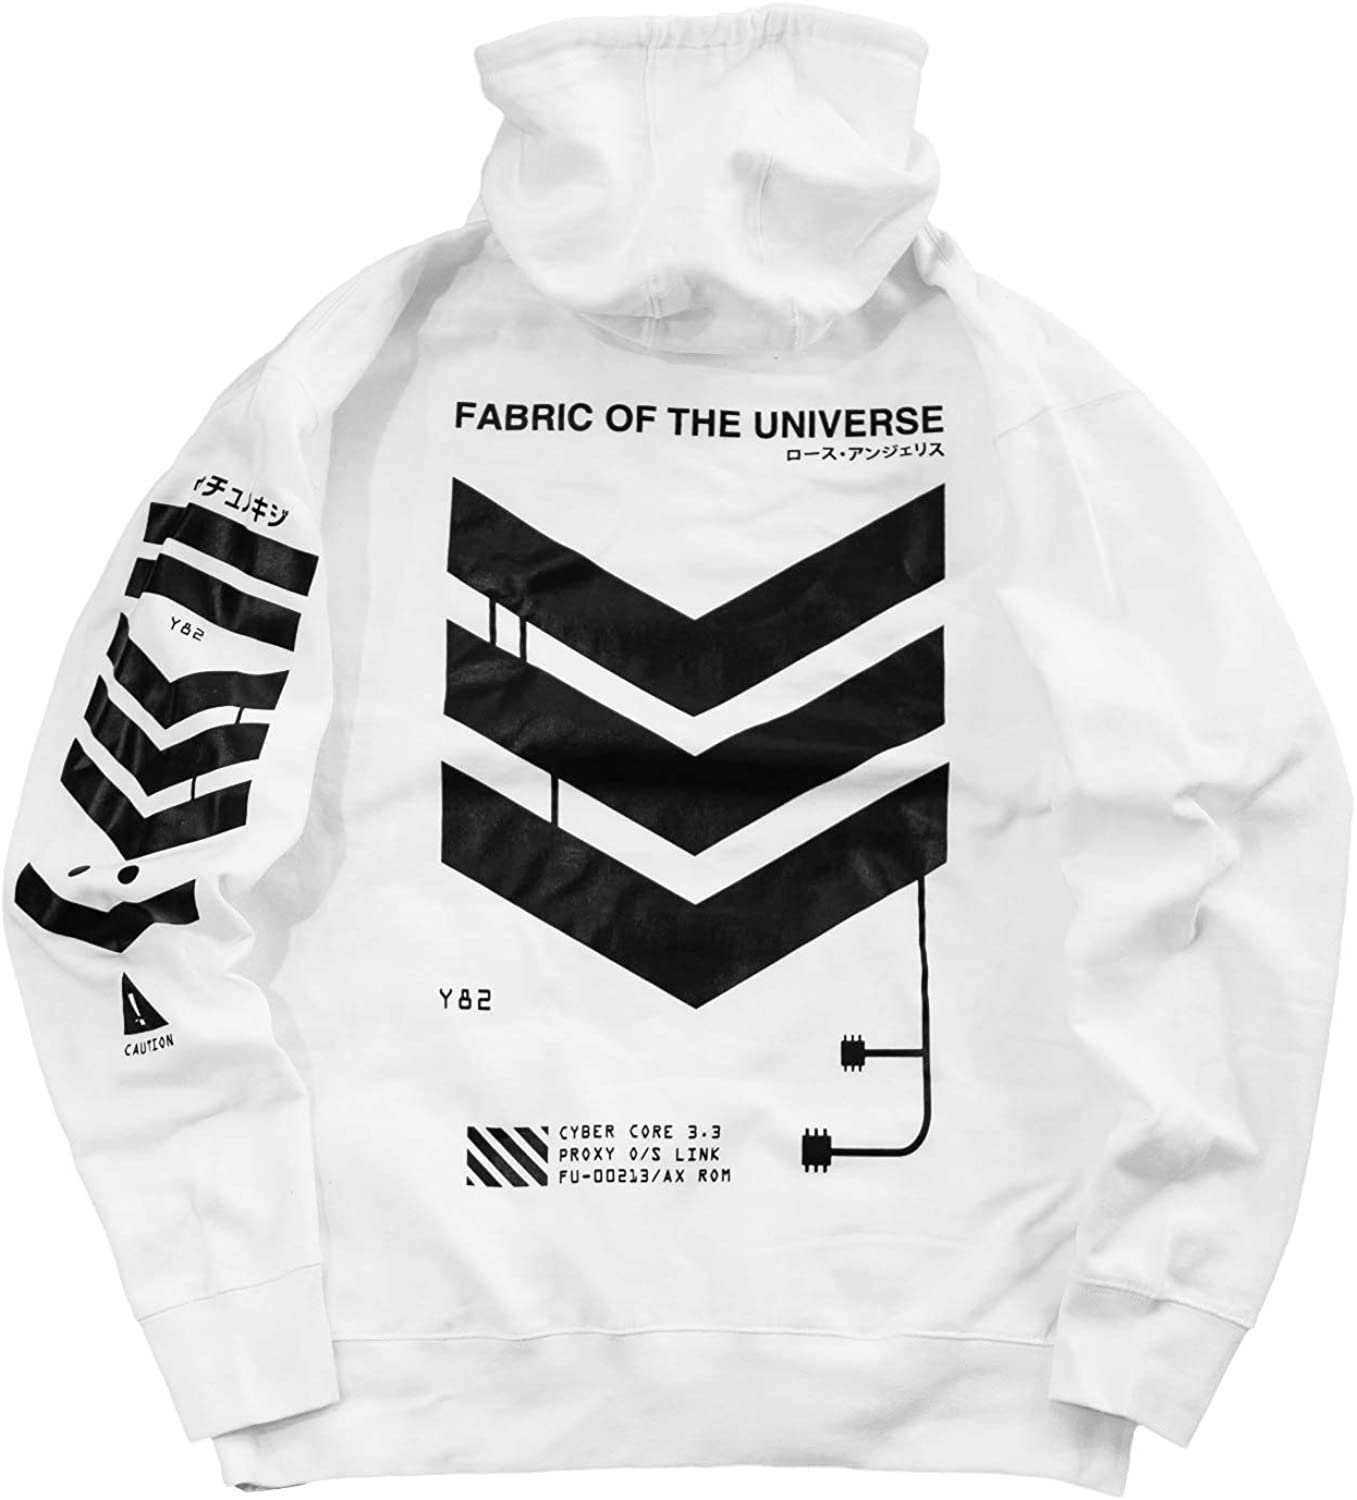 Fabric of the Universe Techwear Cyberpunk Graphic Streetwear Fashion Hoodie Hooded Pullover Sweatshirt